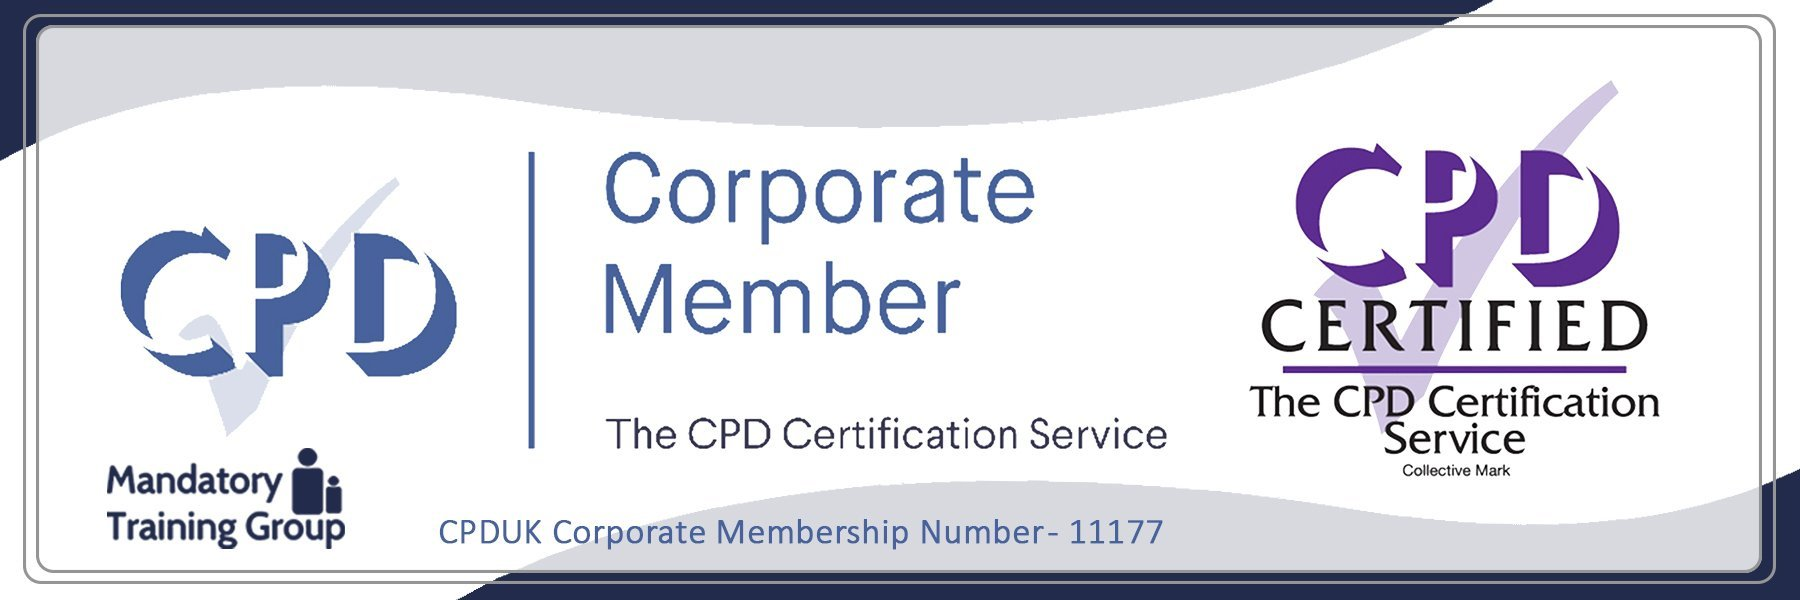 Free Care Certificate Training Courses - Free Online Courses - The Mandatory Training Group UK -